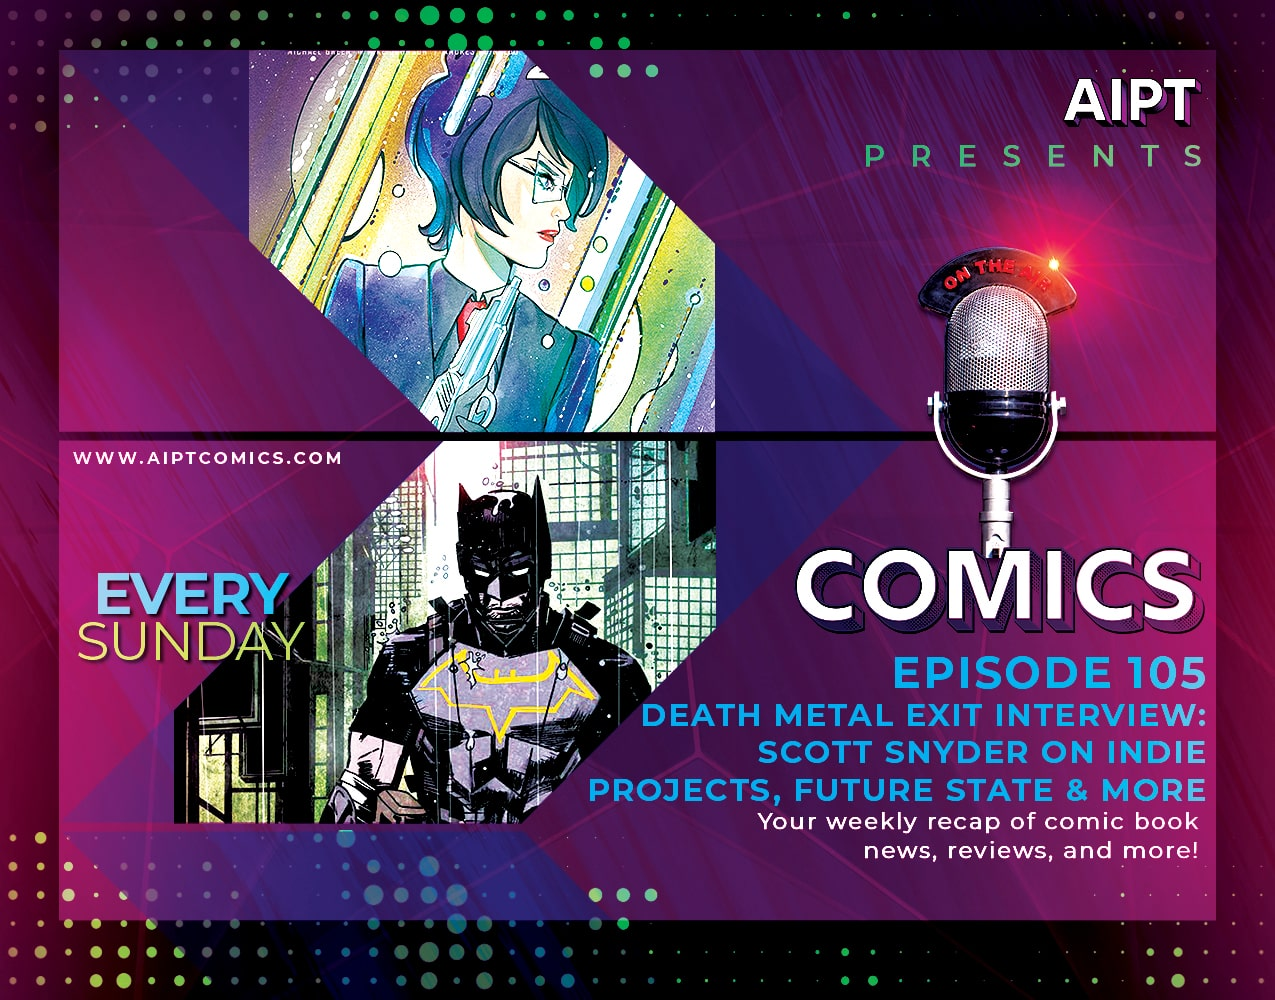 AIPT Comics Podcast Episode 105: 'Dark Nights: Death Metal' Exit Interview: Scott Snyder on DC, indie projects and more